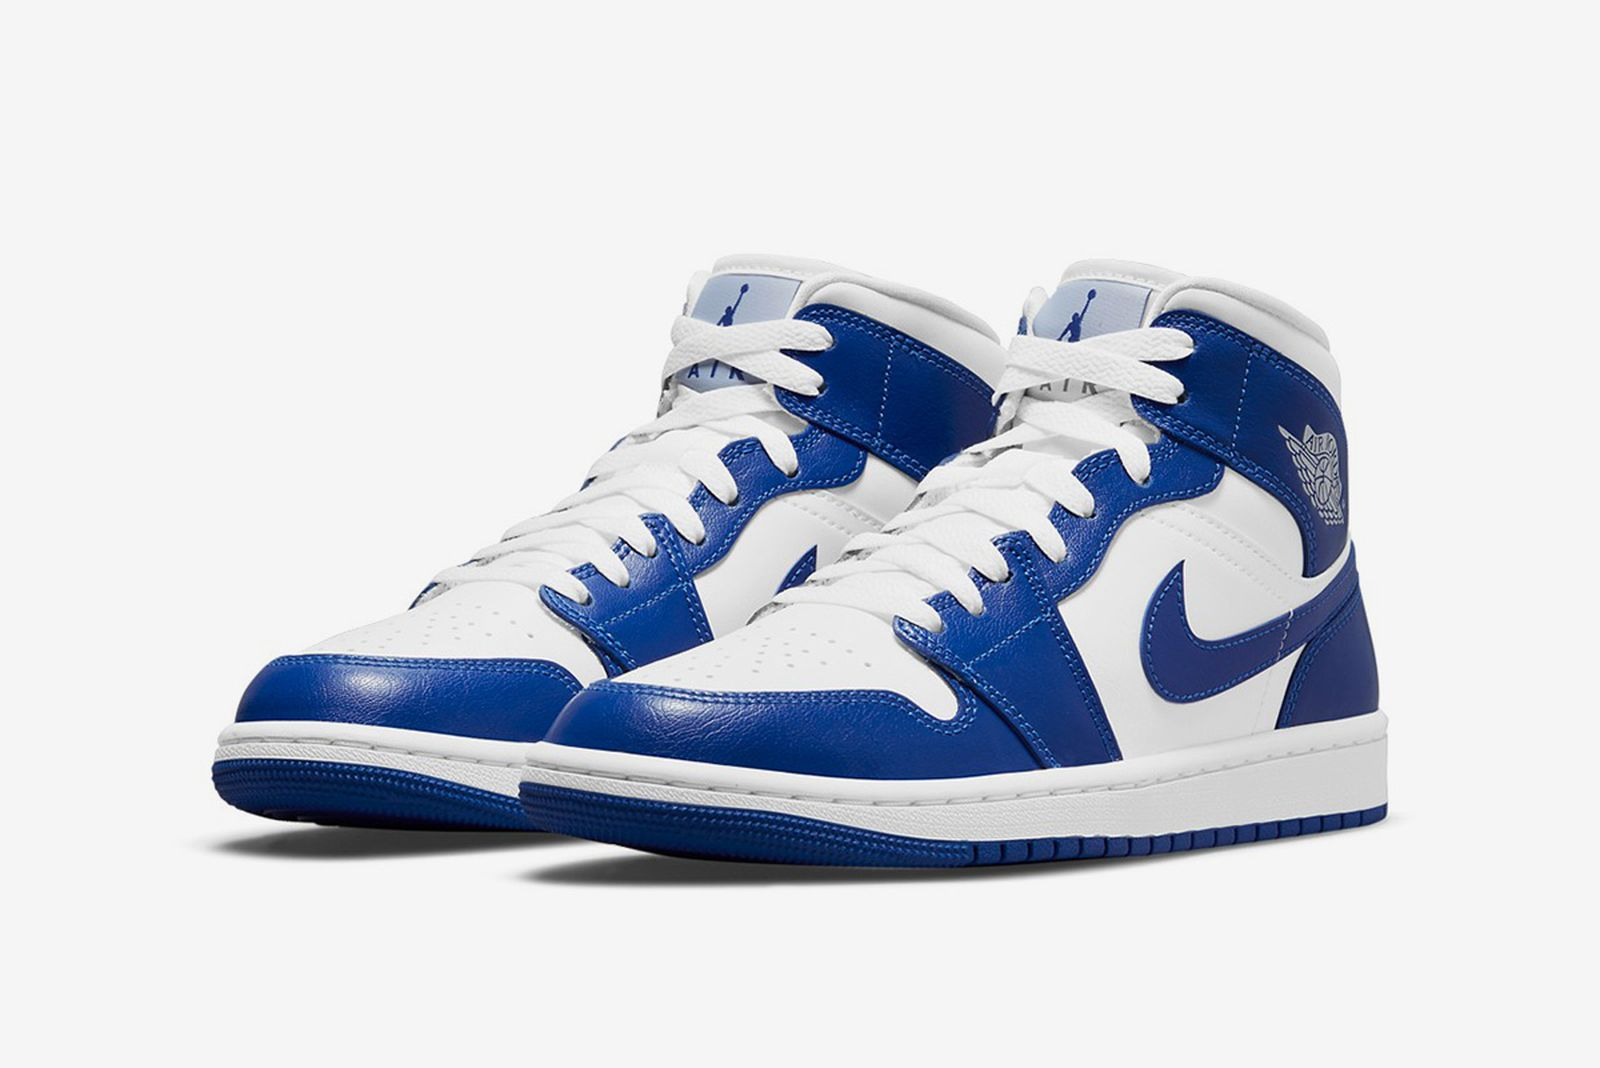 daily-sneaker-roundup-5-18-2021-1-03